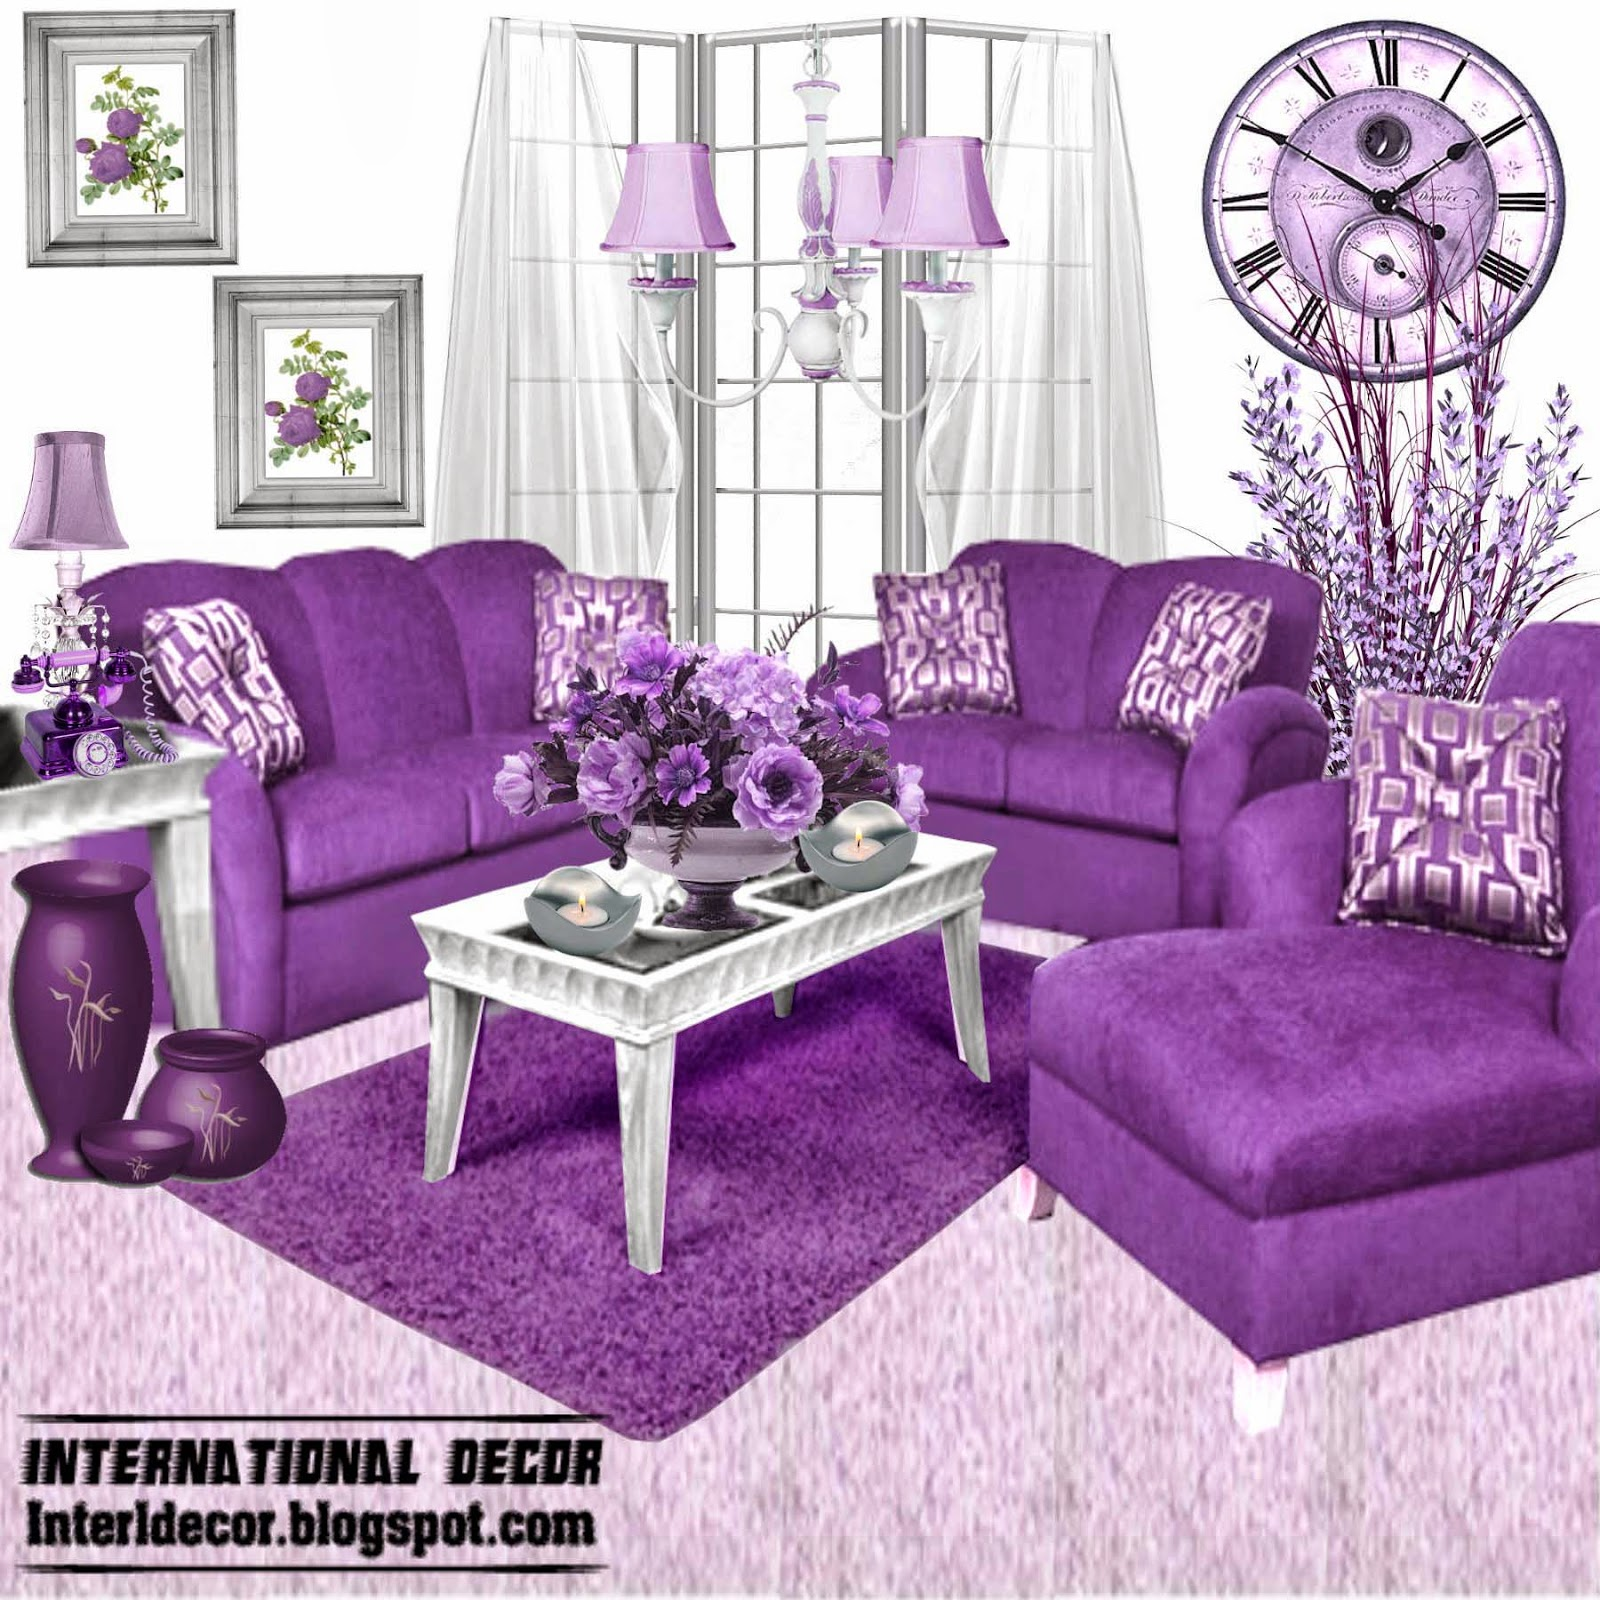 Luxury purple furniture sets sofas chairs for living for Designs of chairs for living room